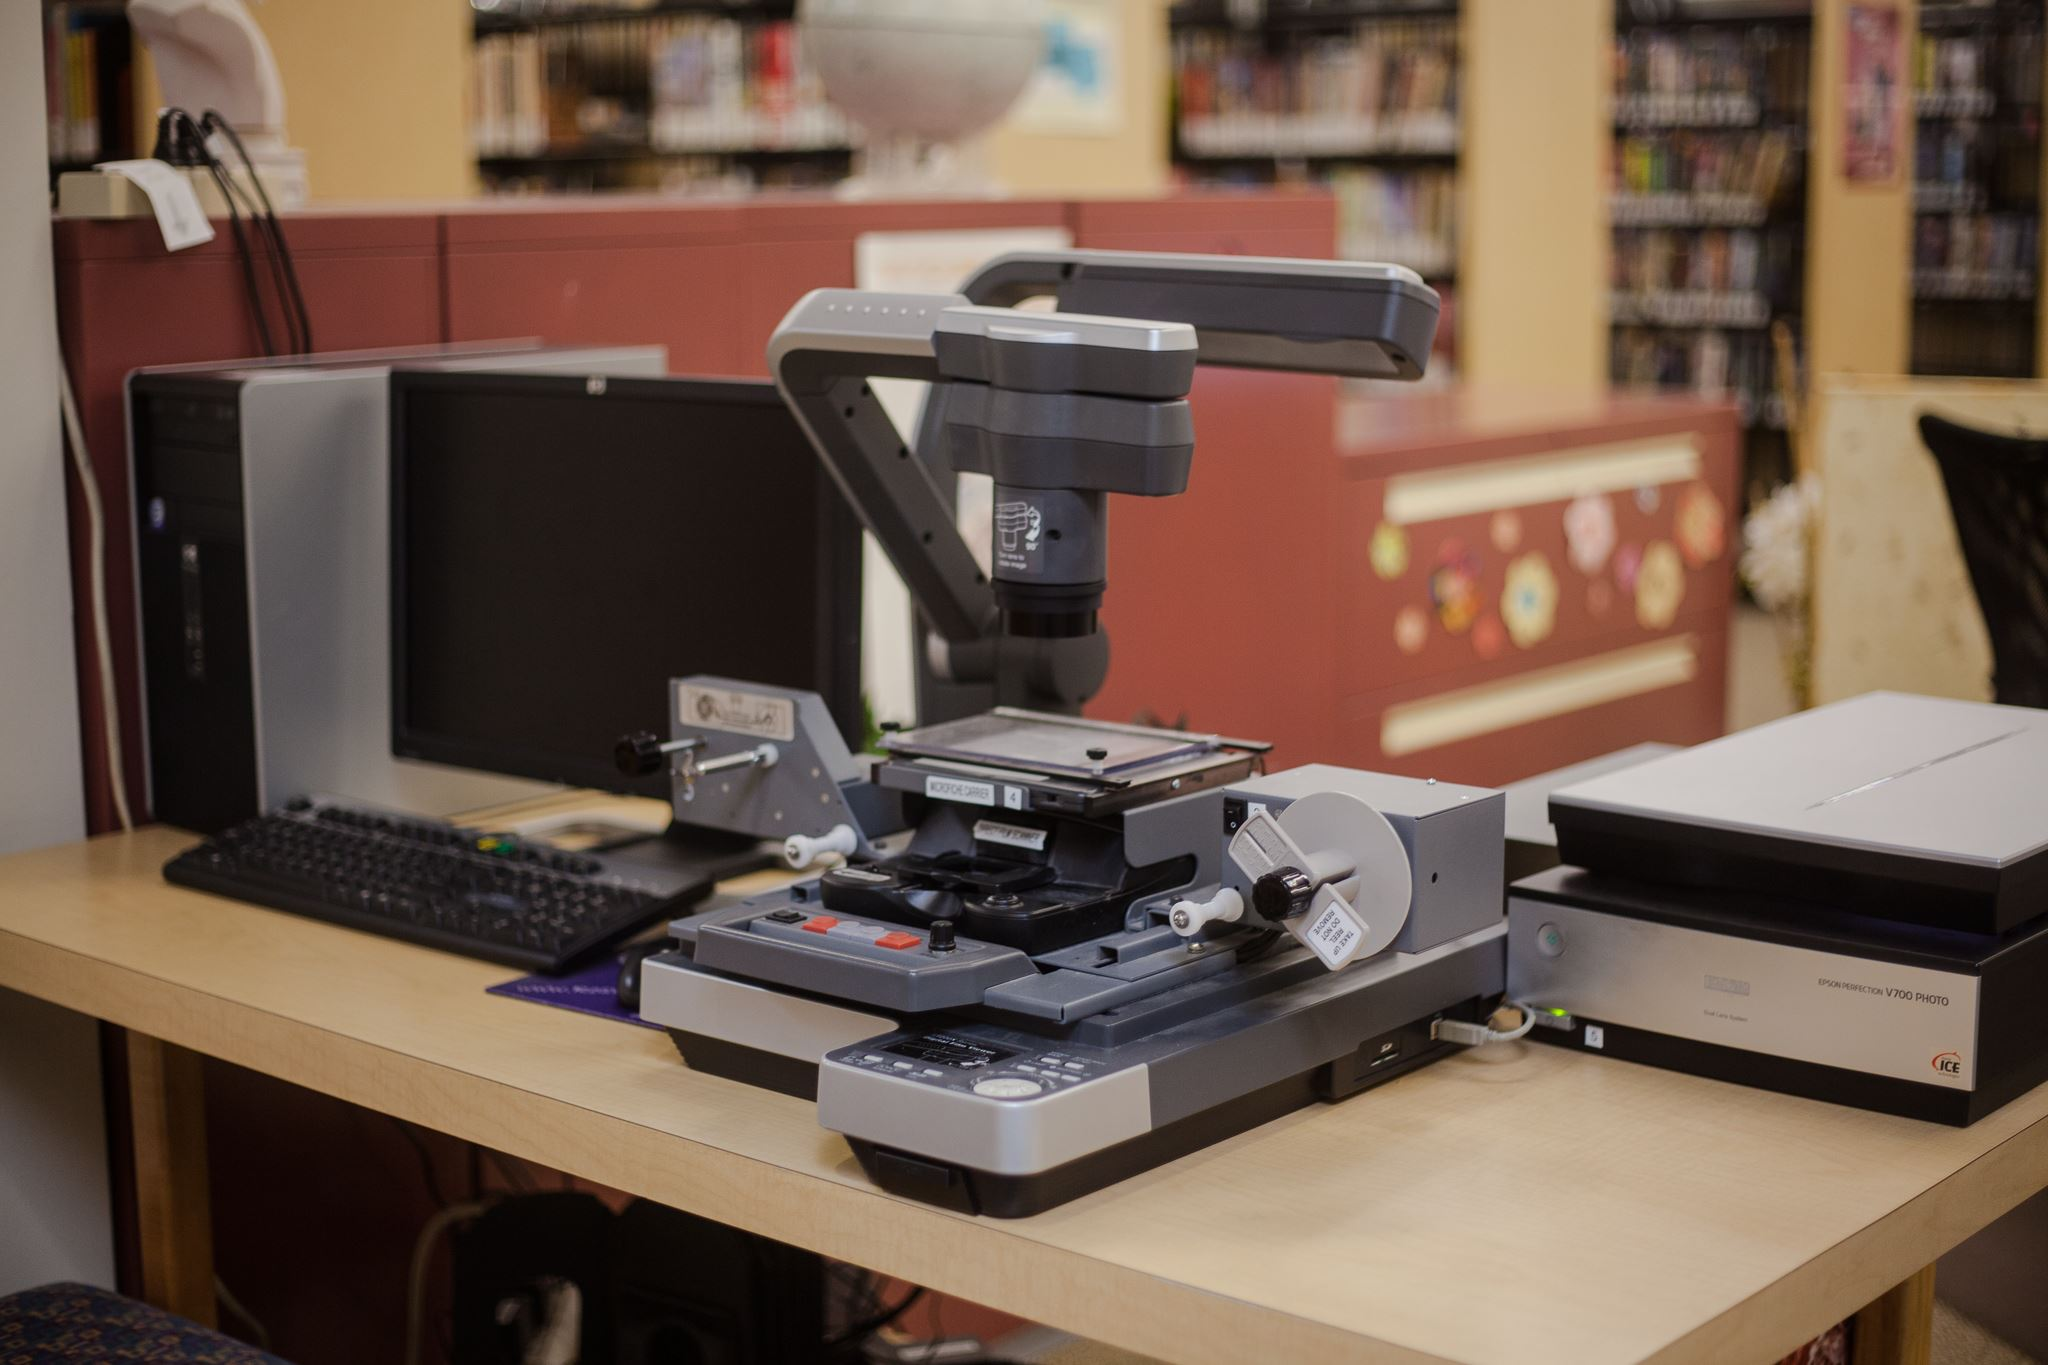 Digital scanning station with microfilm reader